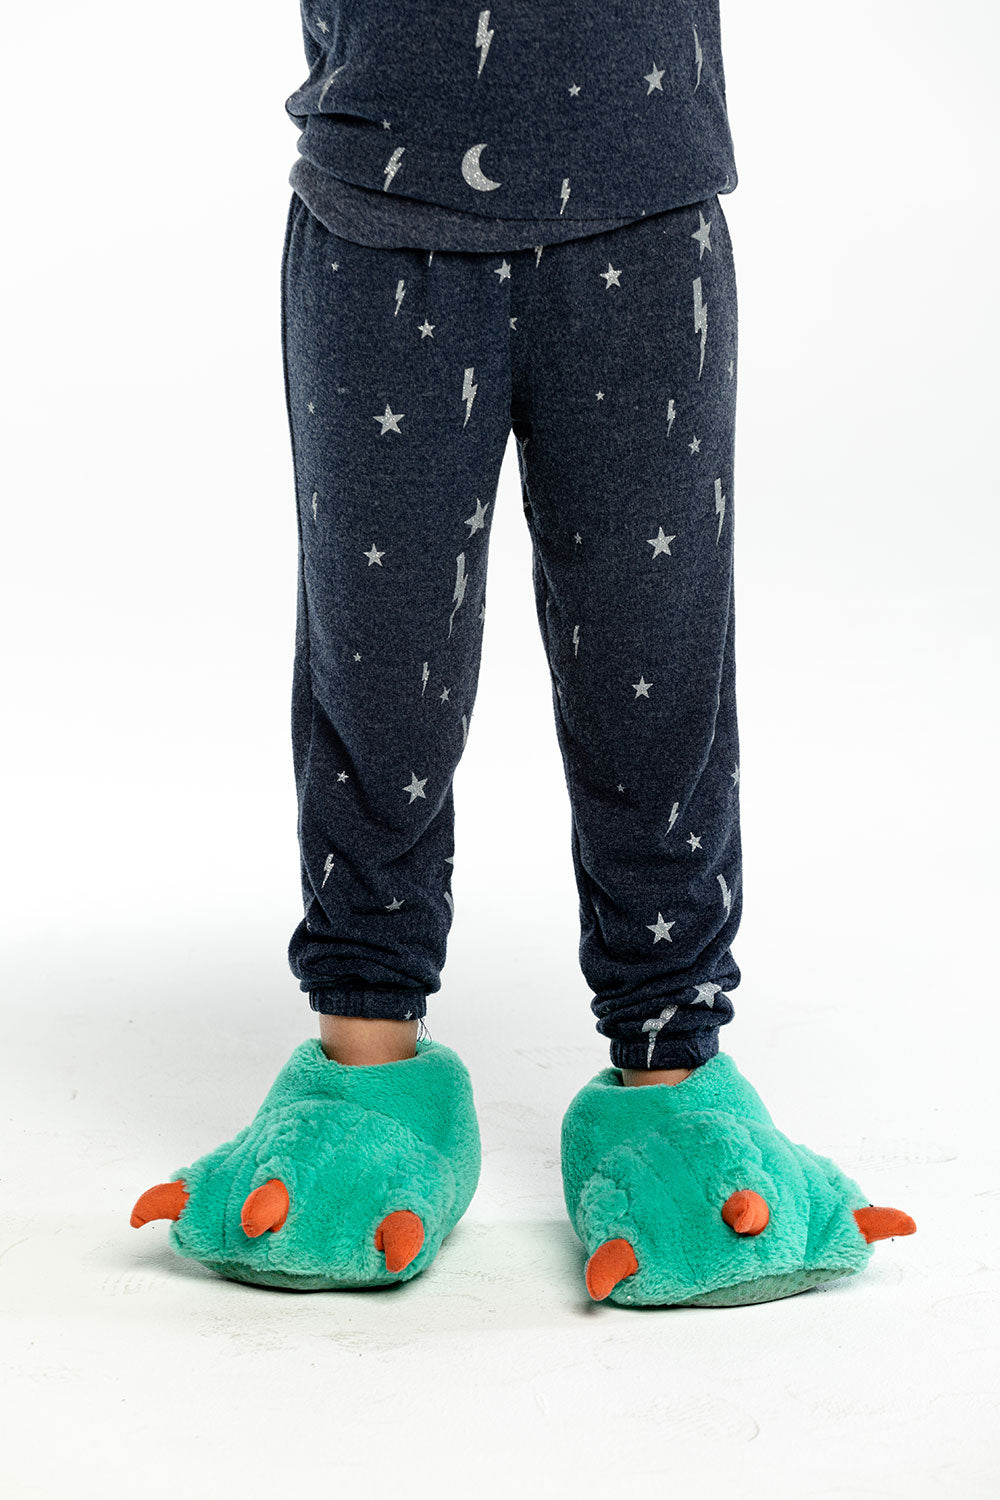 Glitter Stars And Bolts Pant GIRLS chaserbrand4.myshopify.com